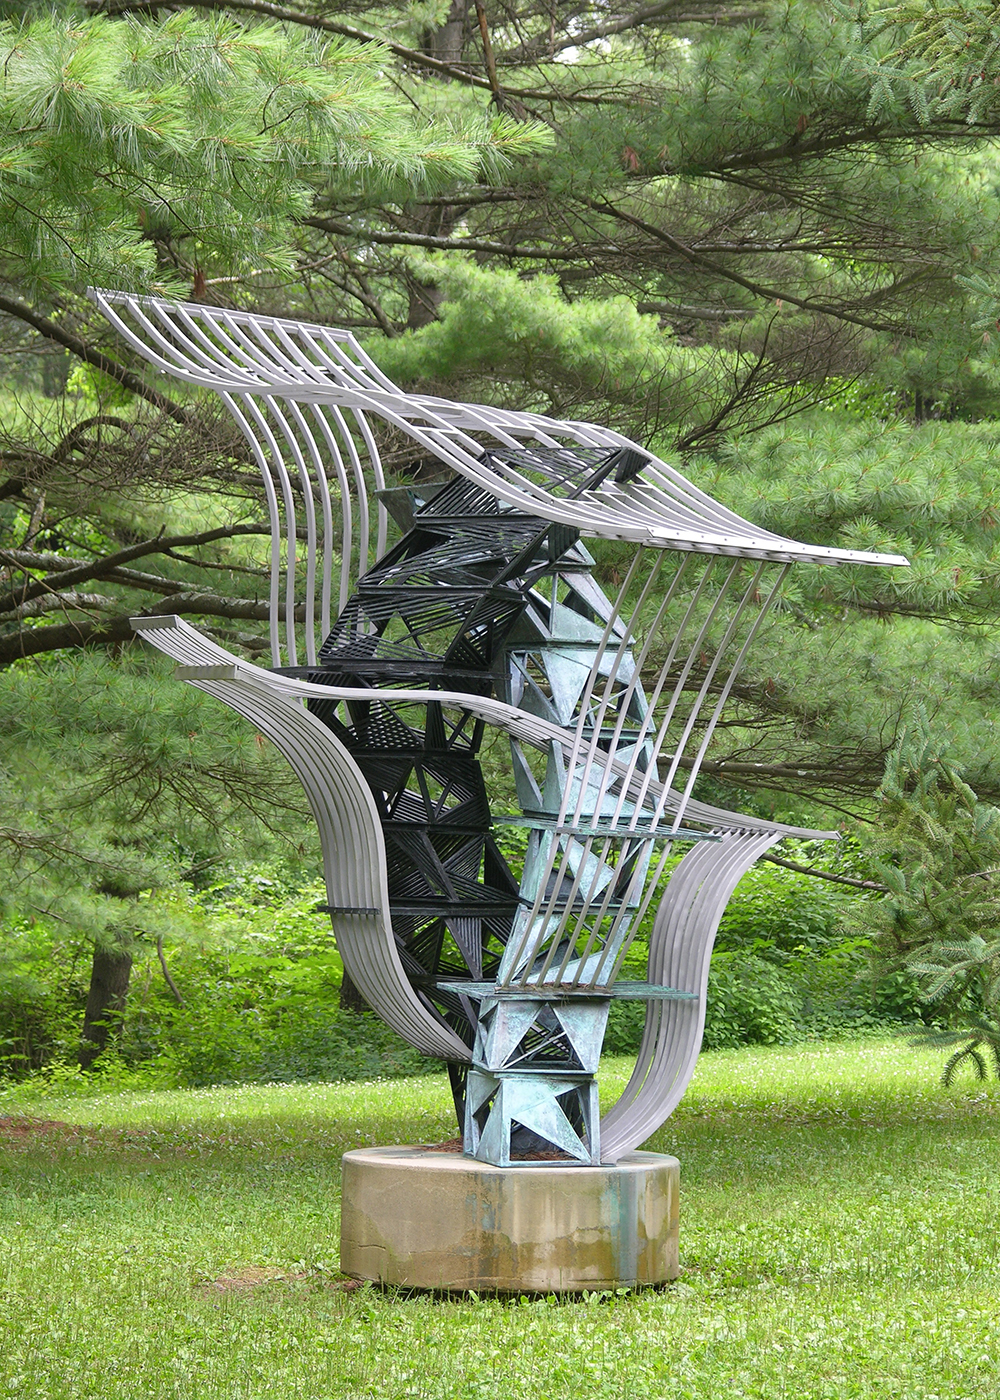 The Embrace, 1994